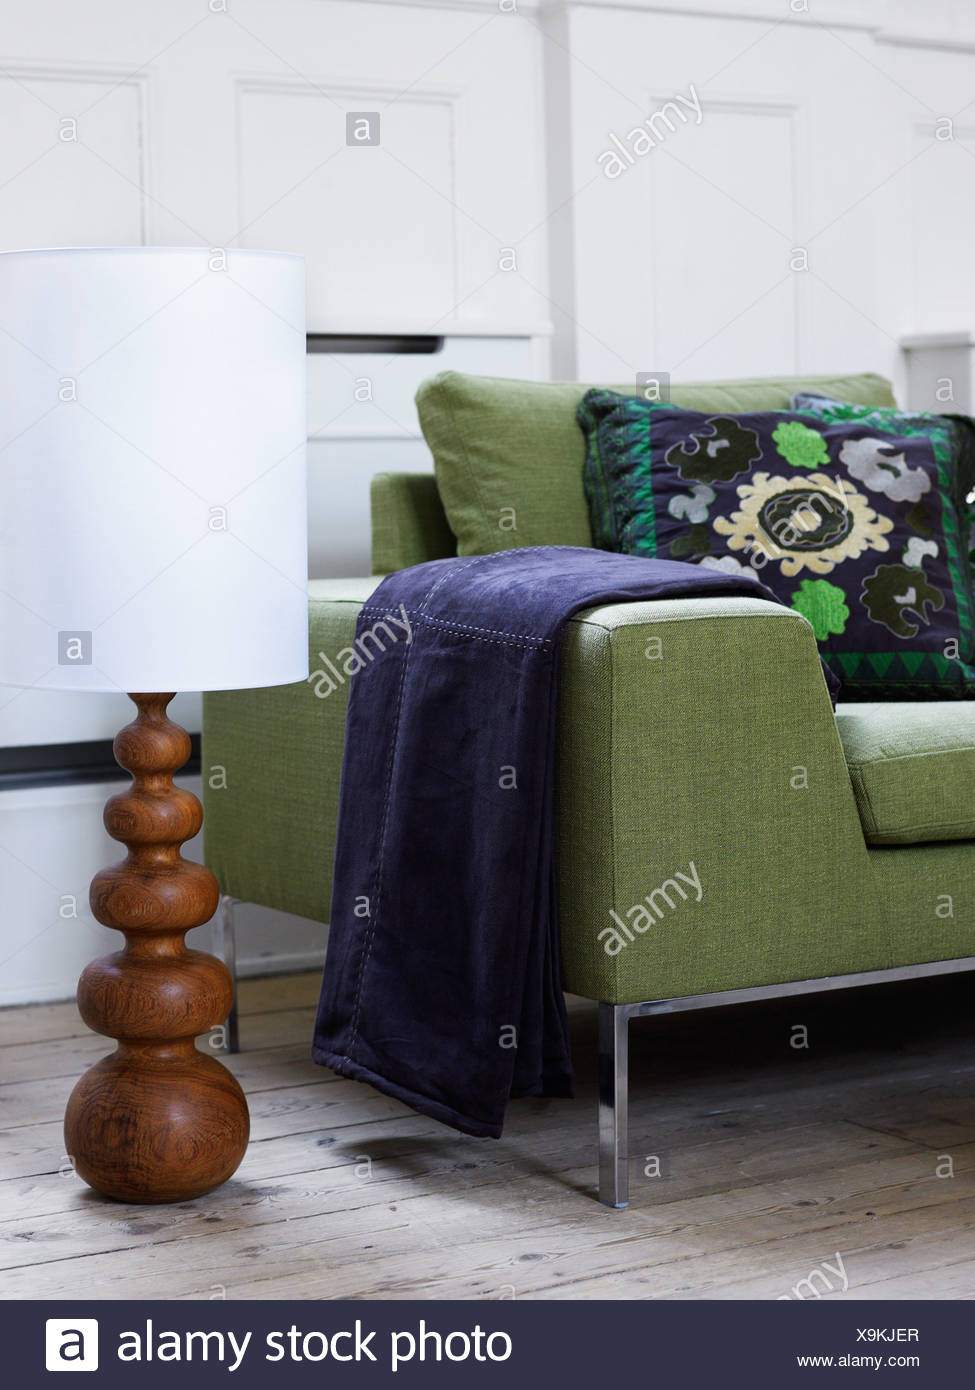 A sofa in a livingroom, Sweden. - Stock Image